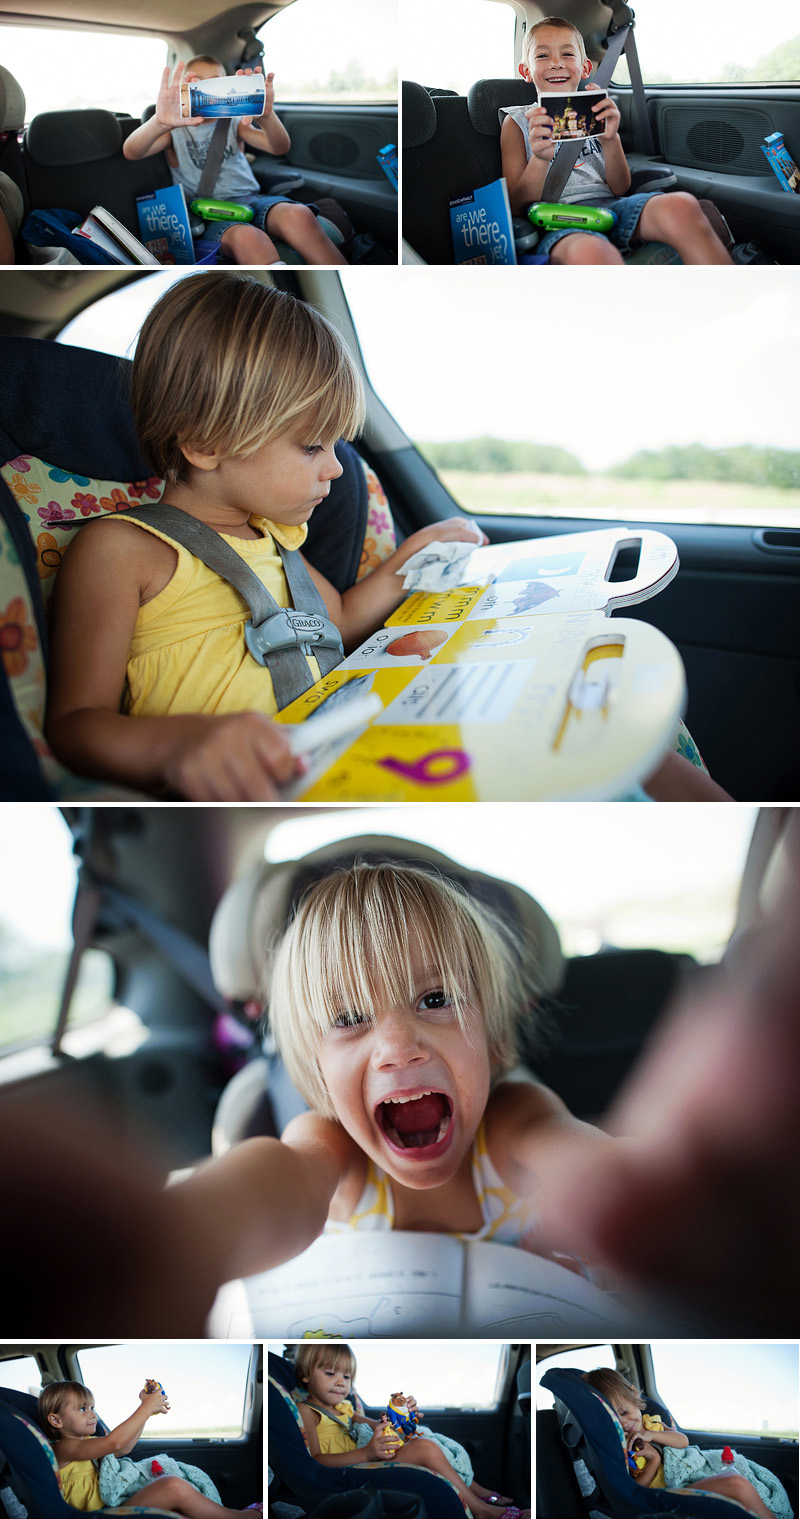 Kids playing in the car on a family road trip